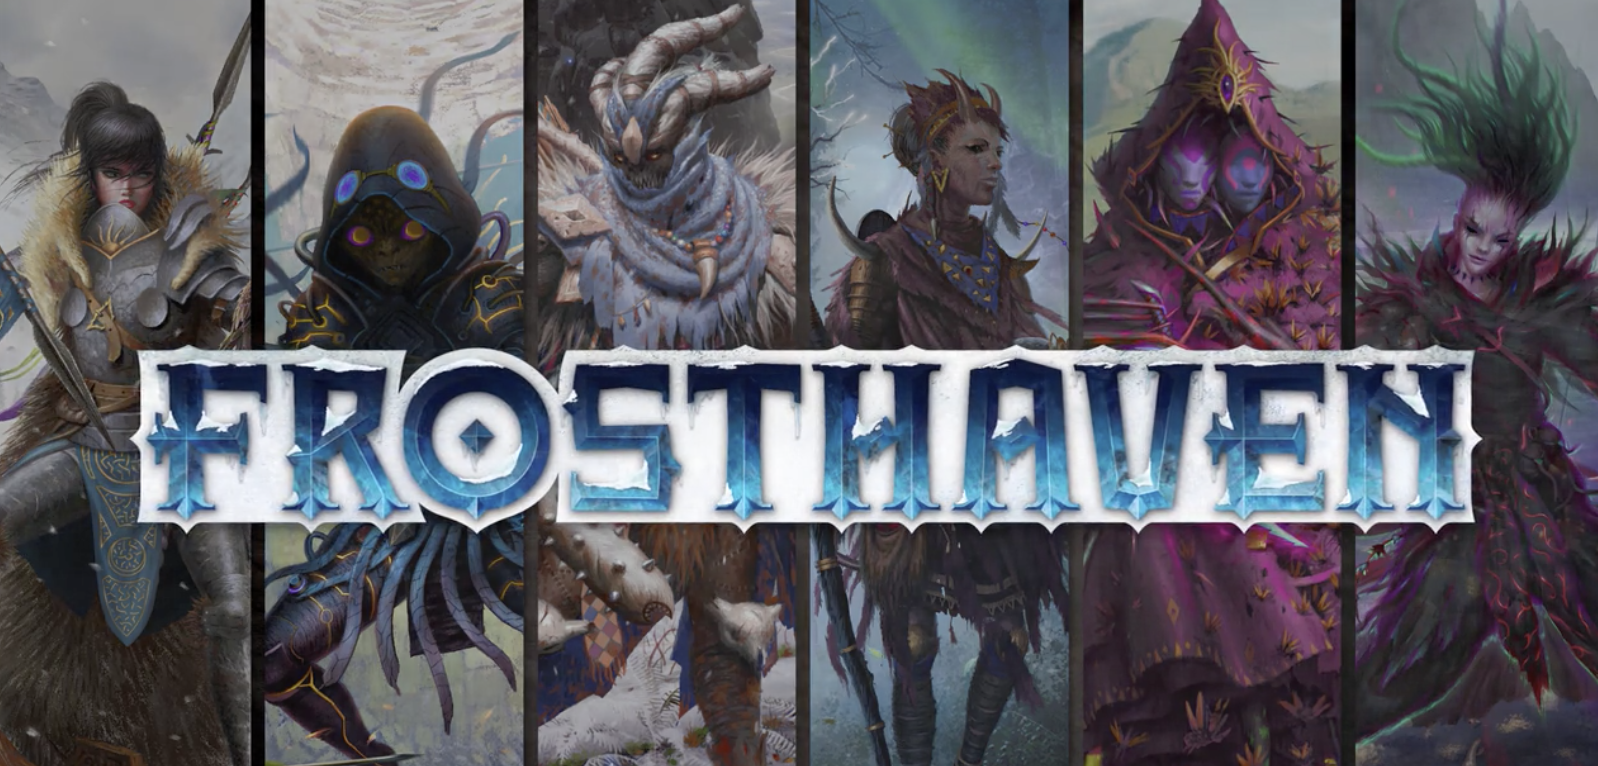 Frosthaven is one of the most successful kickstarter campaigns